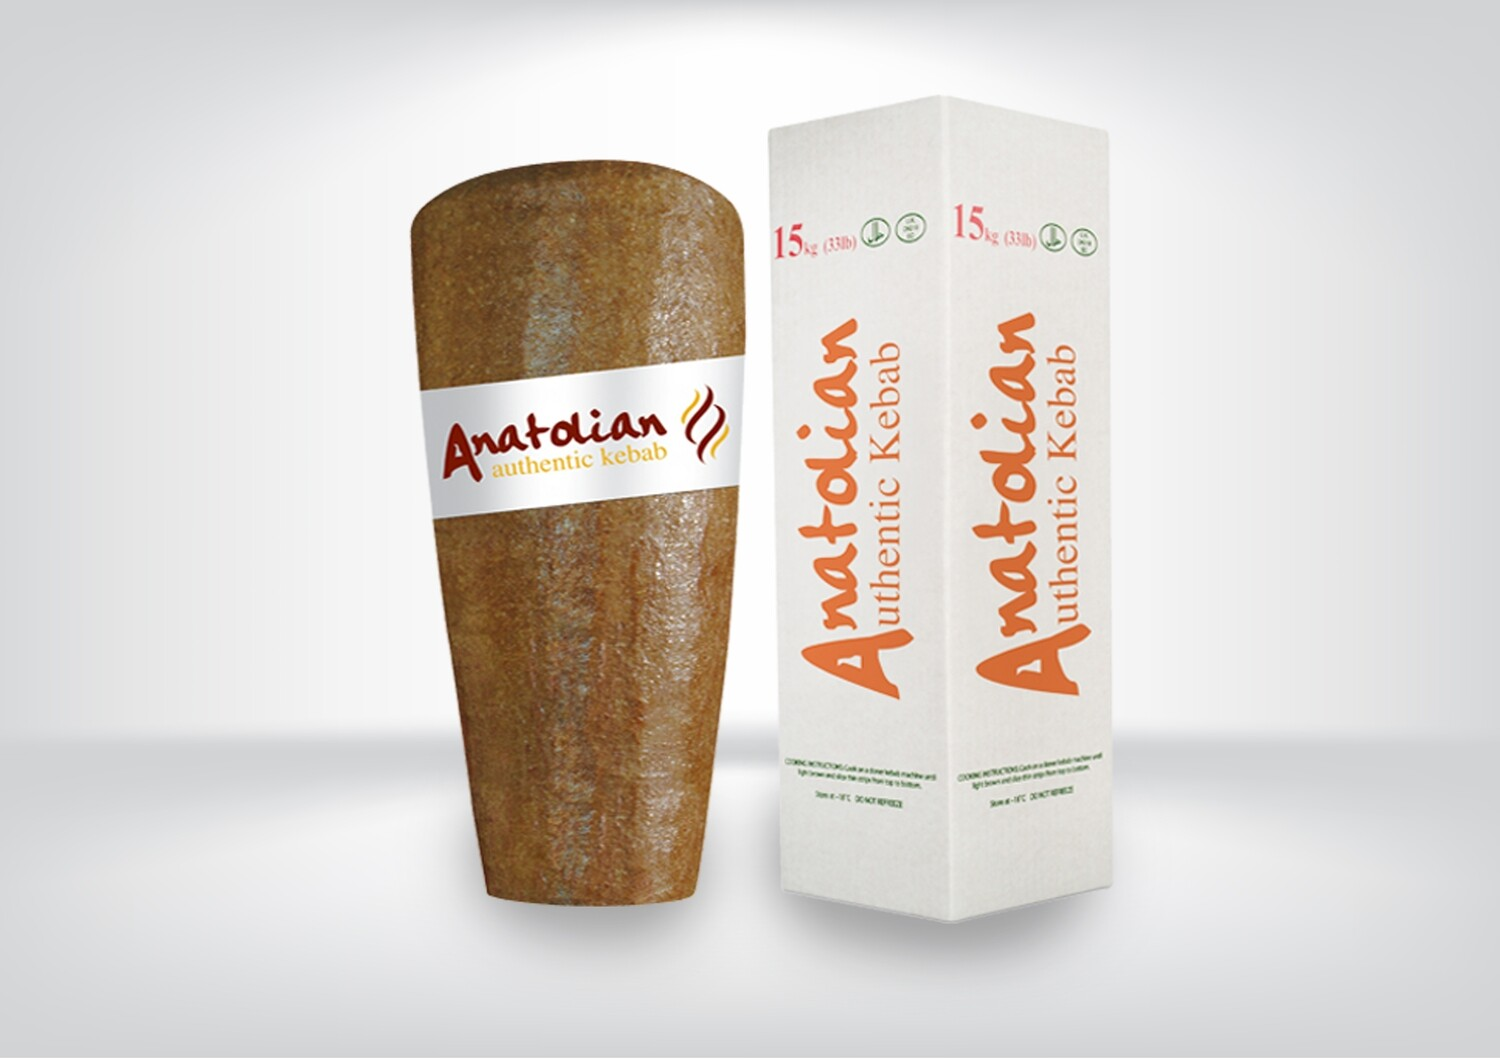 15 Kg Anatolian Non & Beef Doner